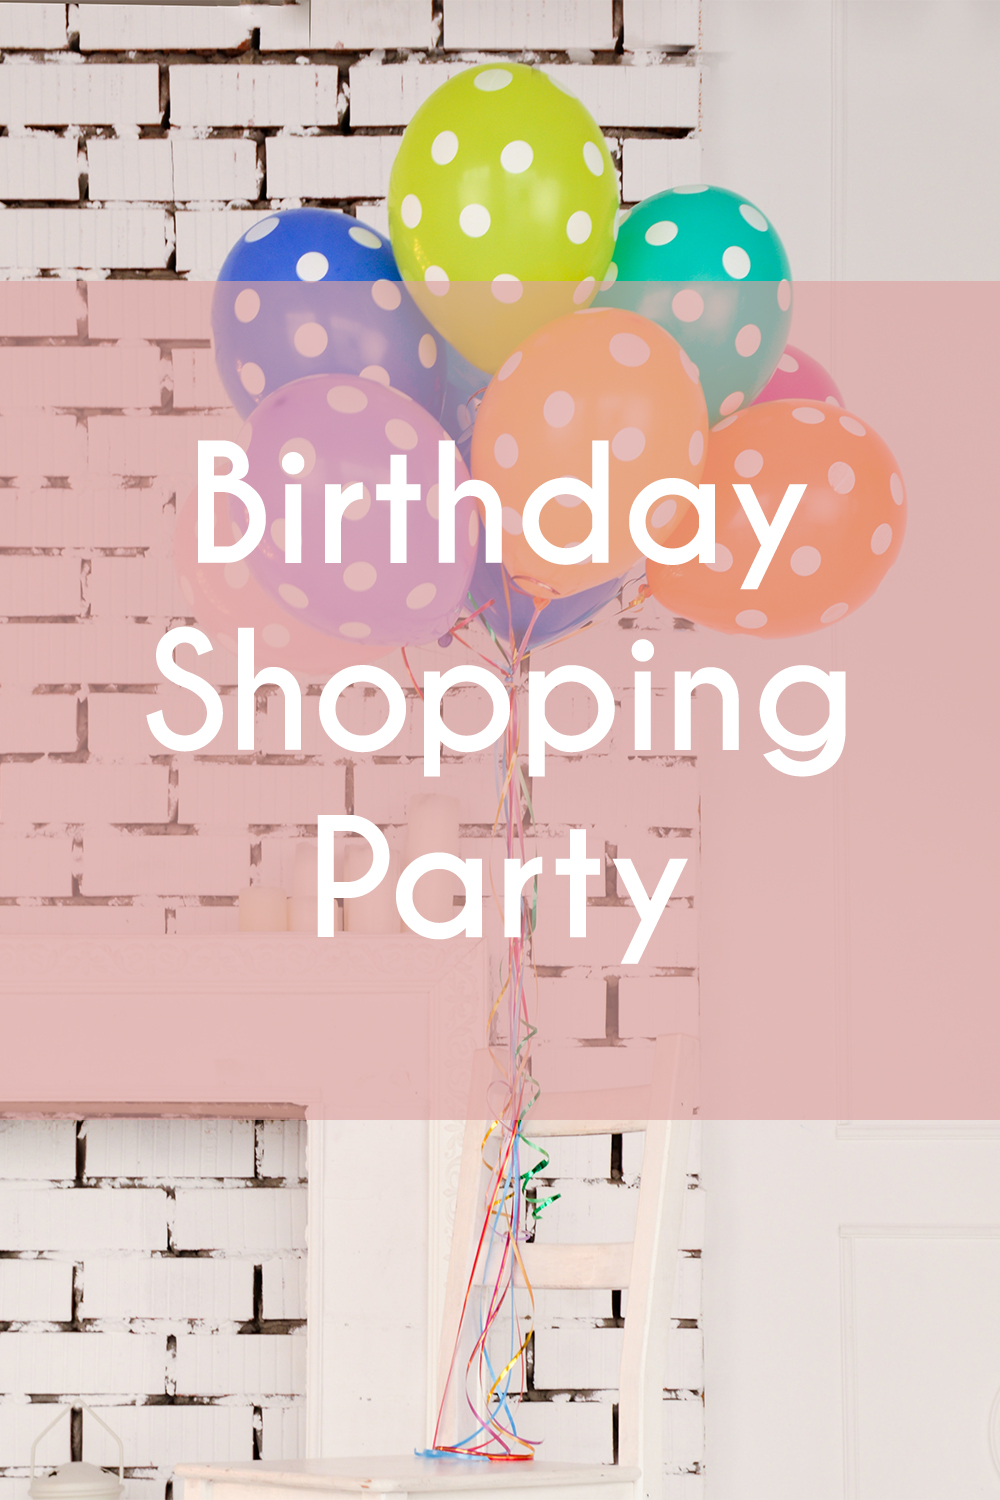 Birthday Shopping Party